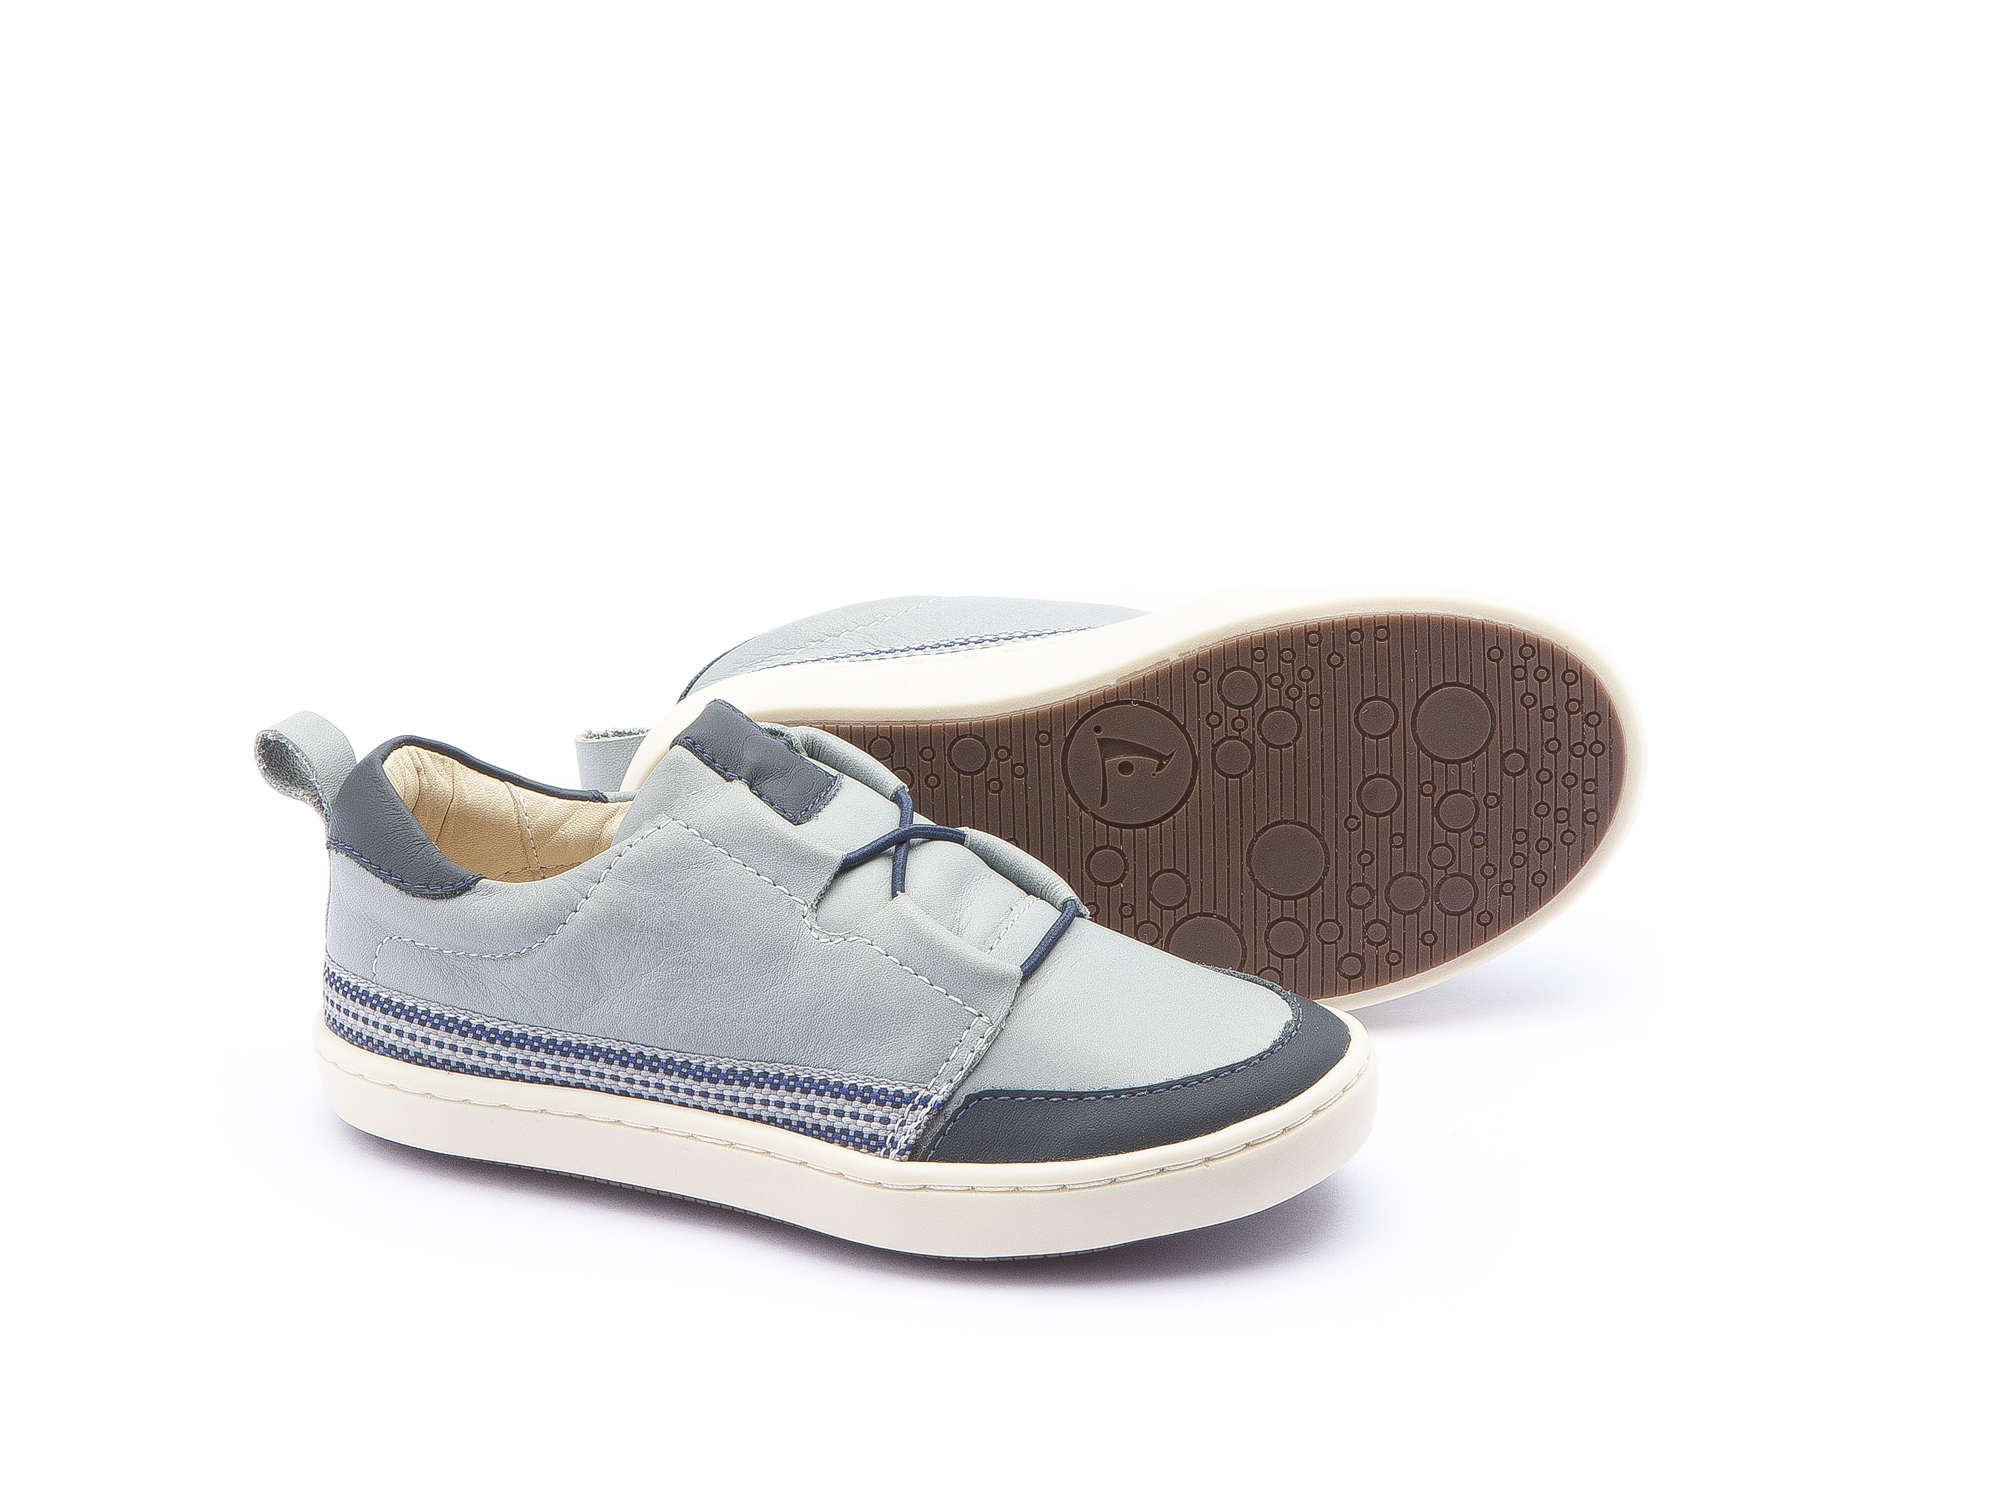 Sneaker Casual Little Ancestral Slate Blue Toddler 2 à 4 anos - 2